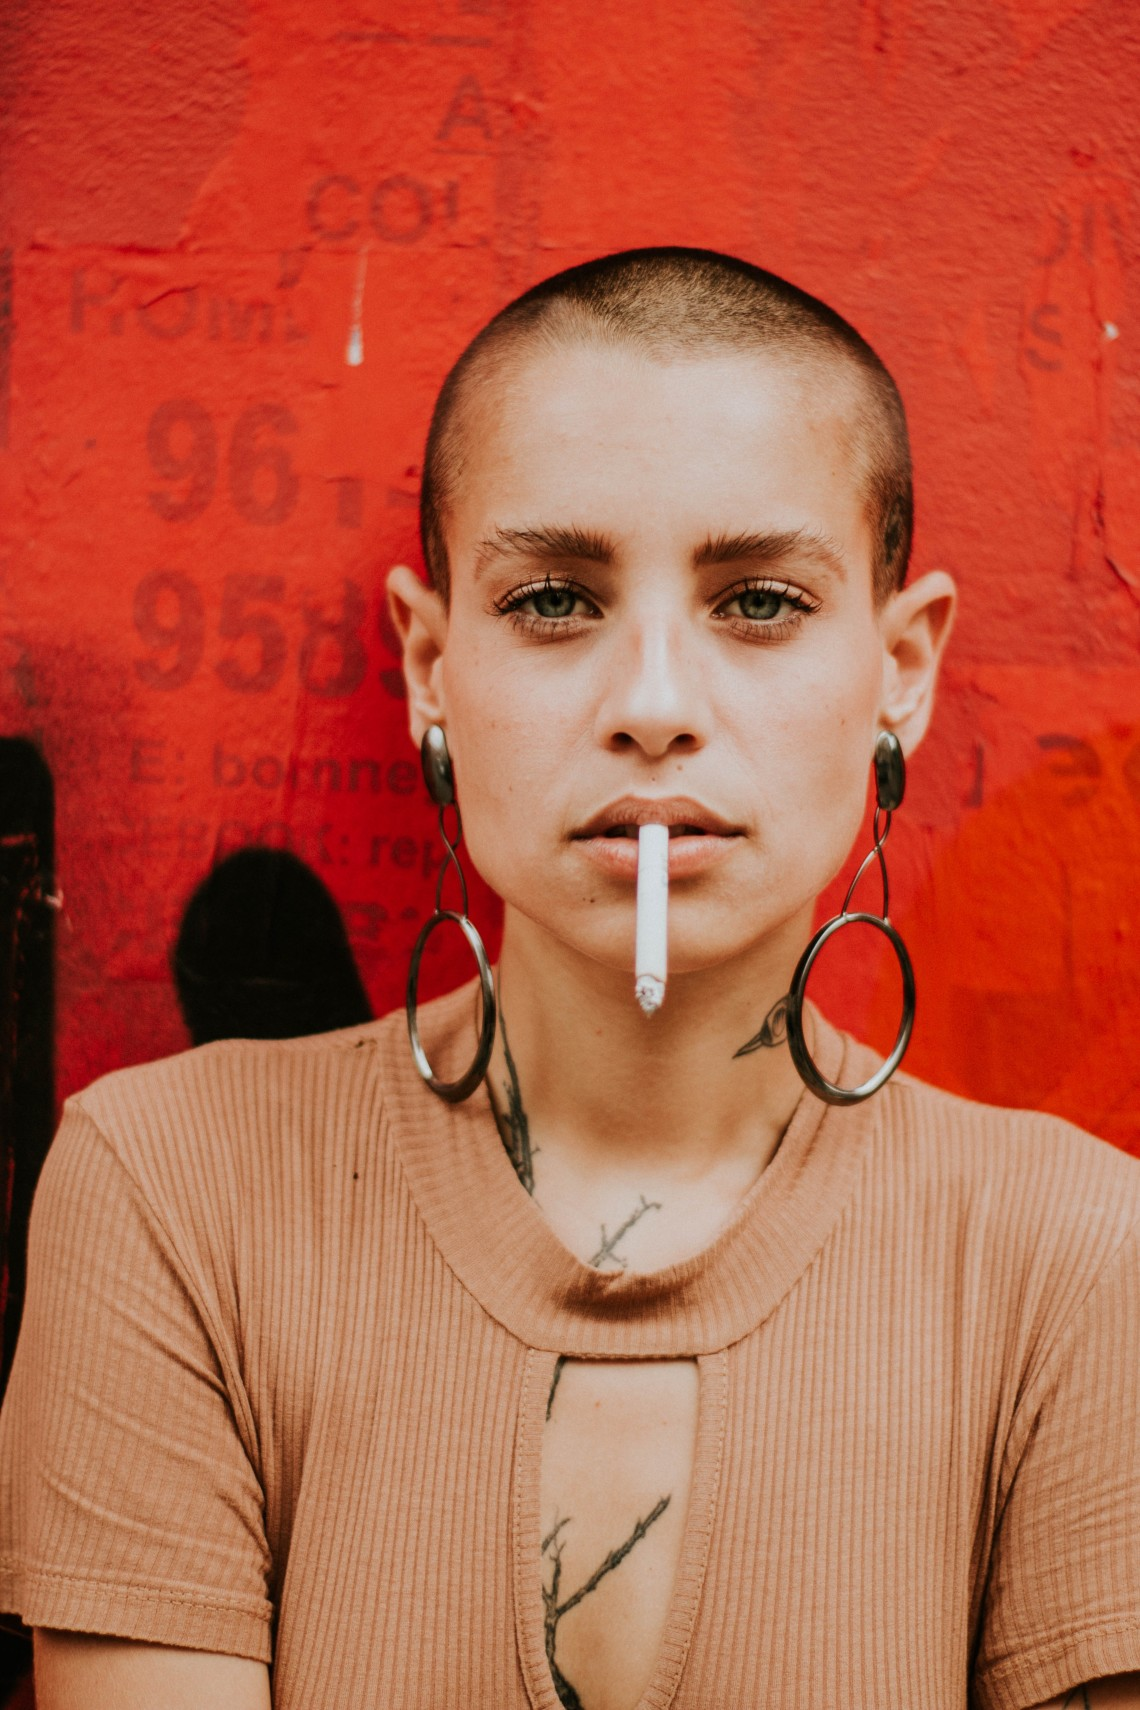 bald-beautiful-woman-cigar-1951073